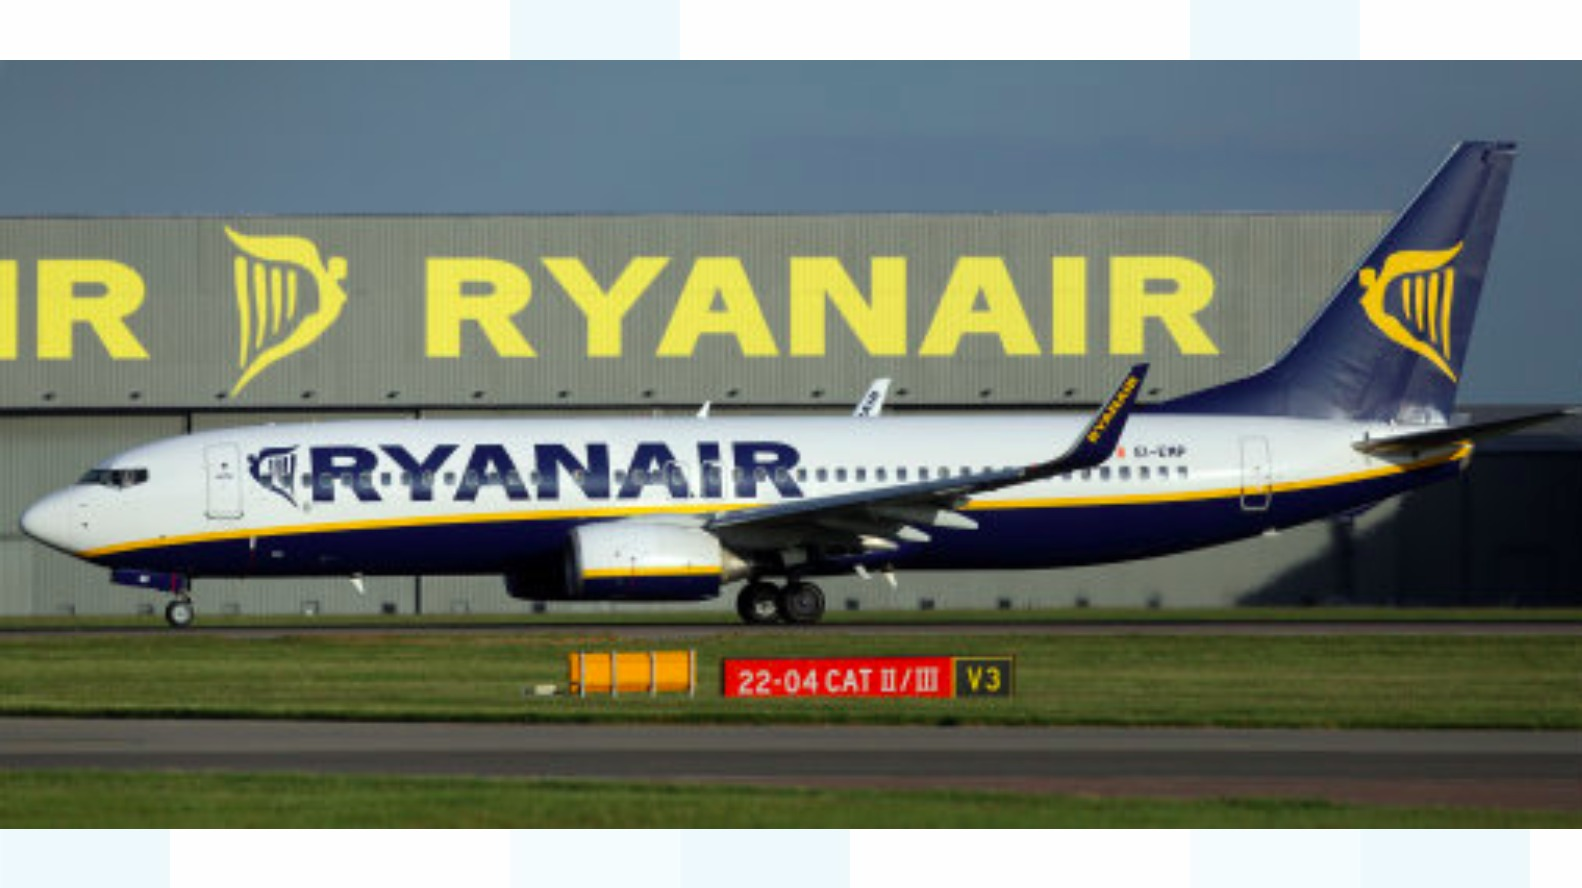 Ryanair flights to Malaga from Newcastle cancelled | Tyne Tees - ITV News